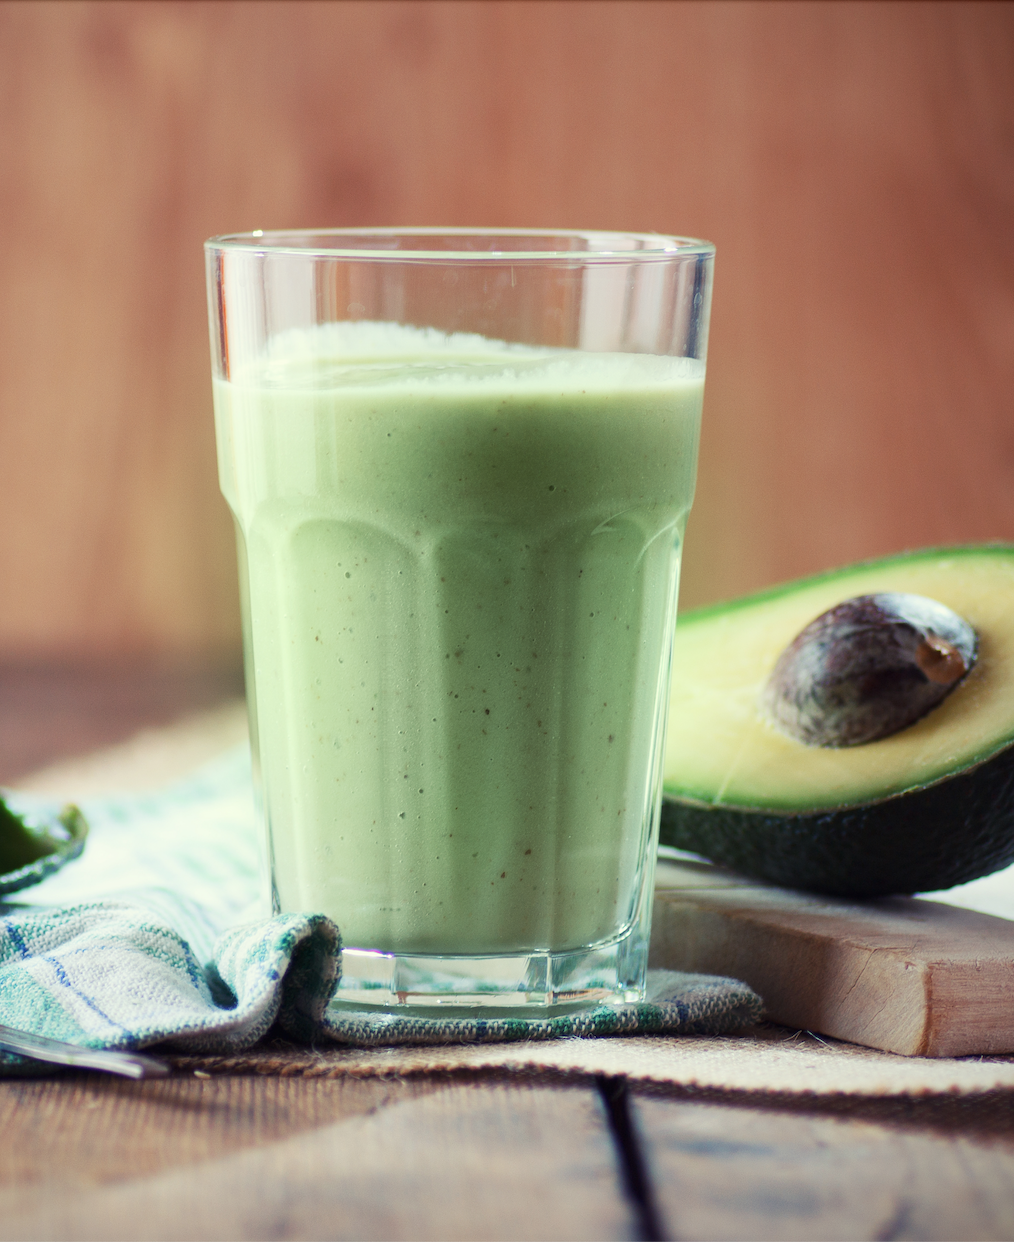 Supercharge Your Morning With Tribe's Super Healthy CBD Avocado Smoothie